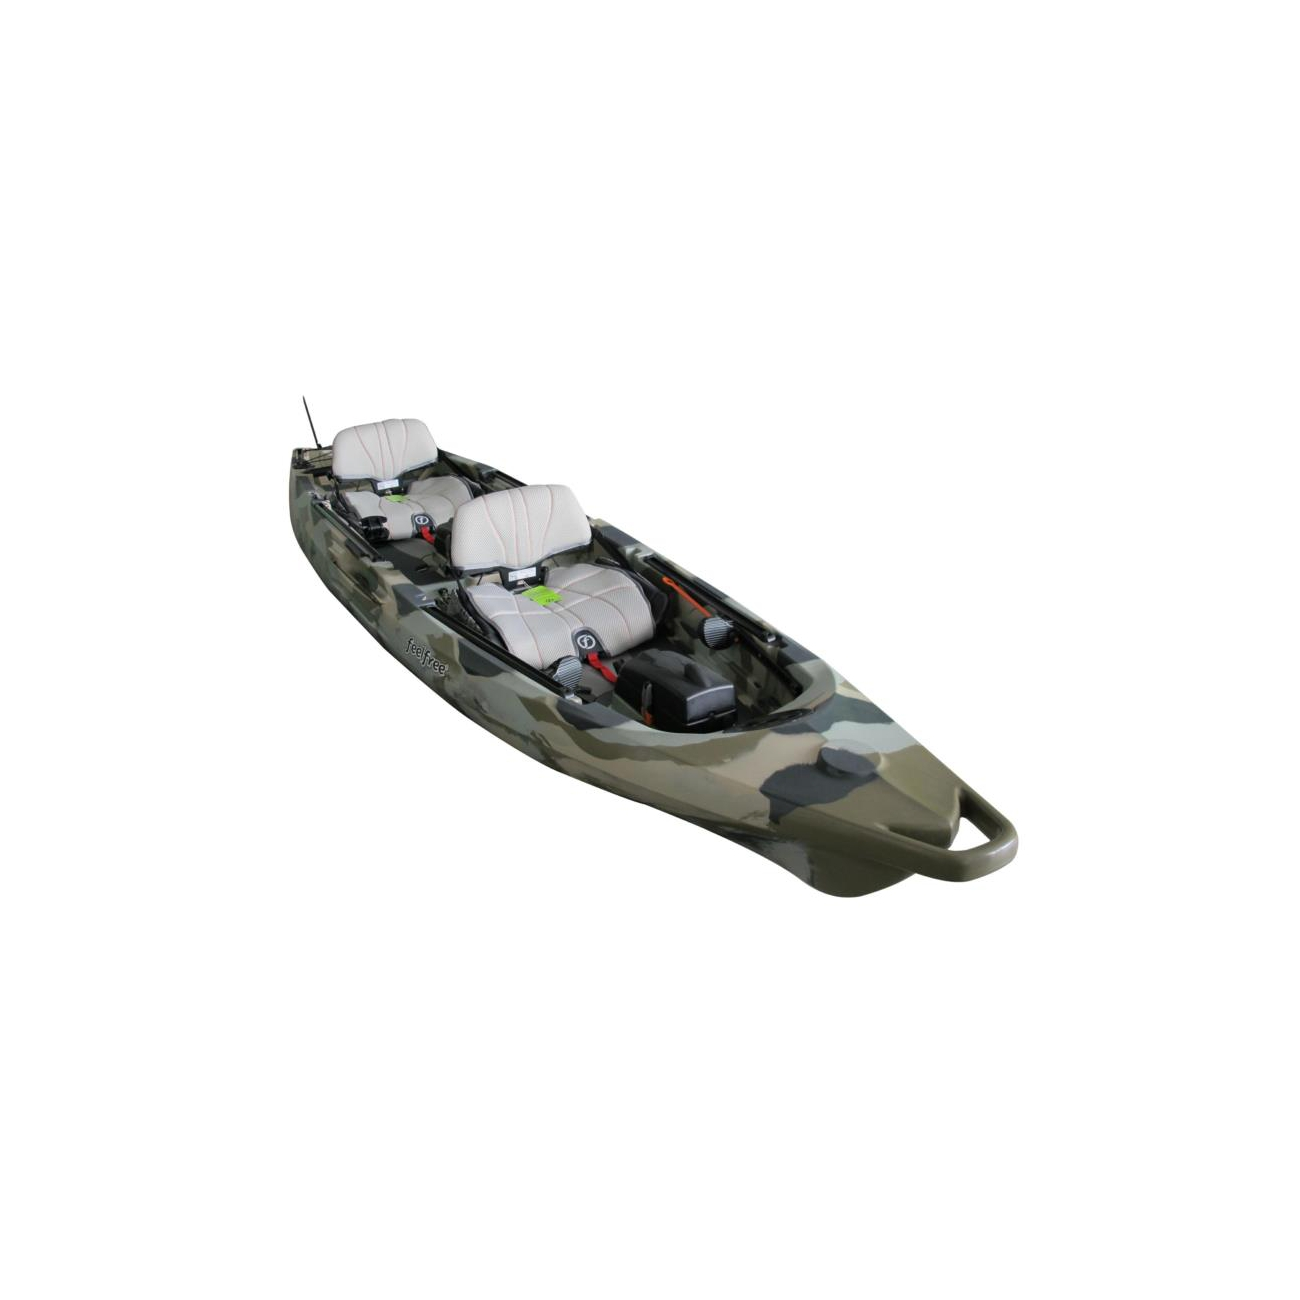 https://feelfreekayak.eu/718-small_default/lure-ii-tandem.jpg